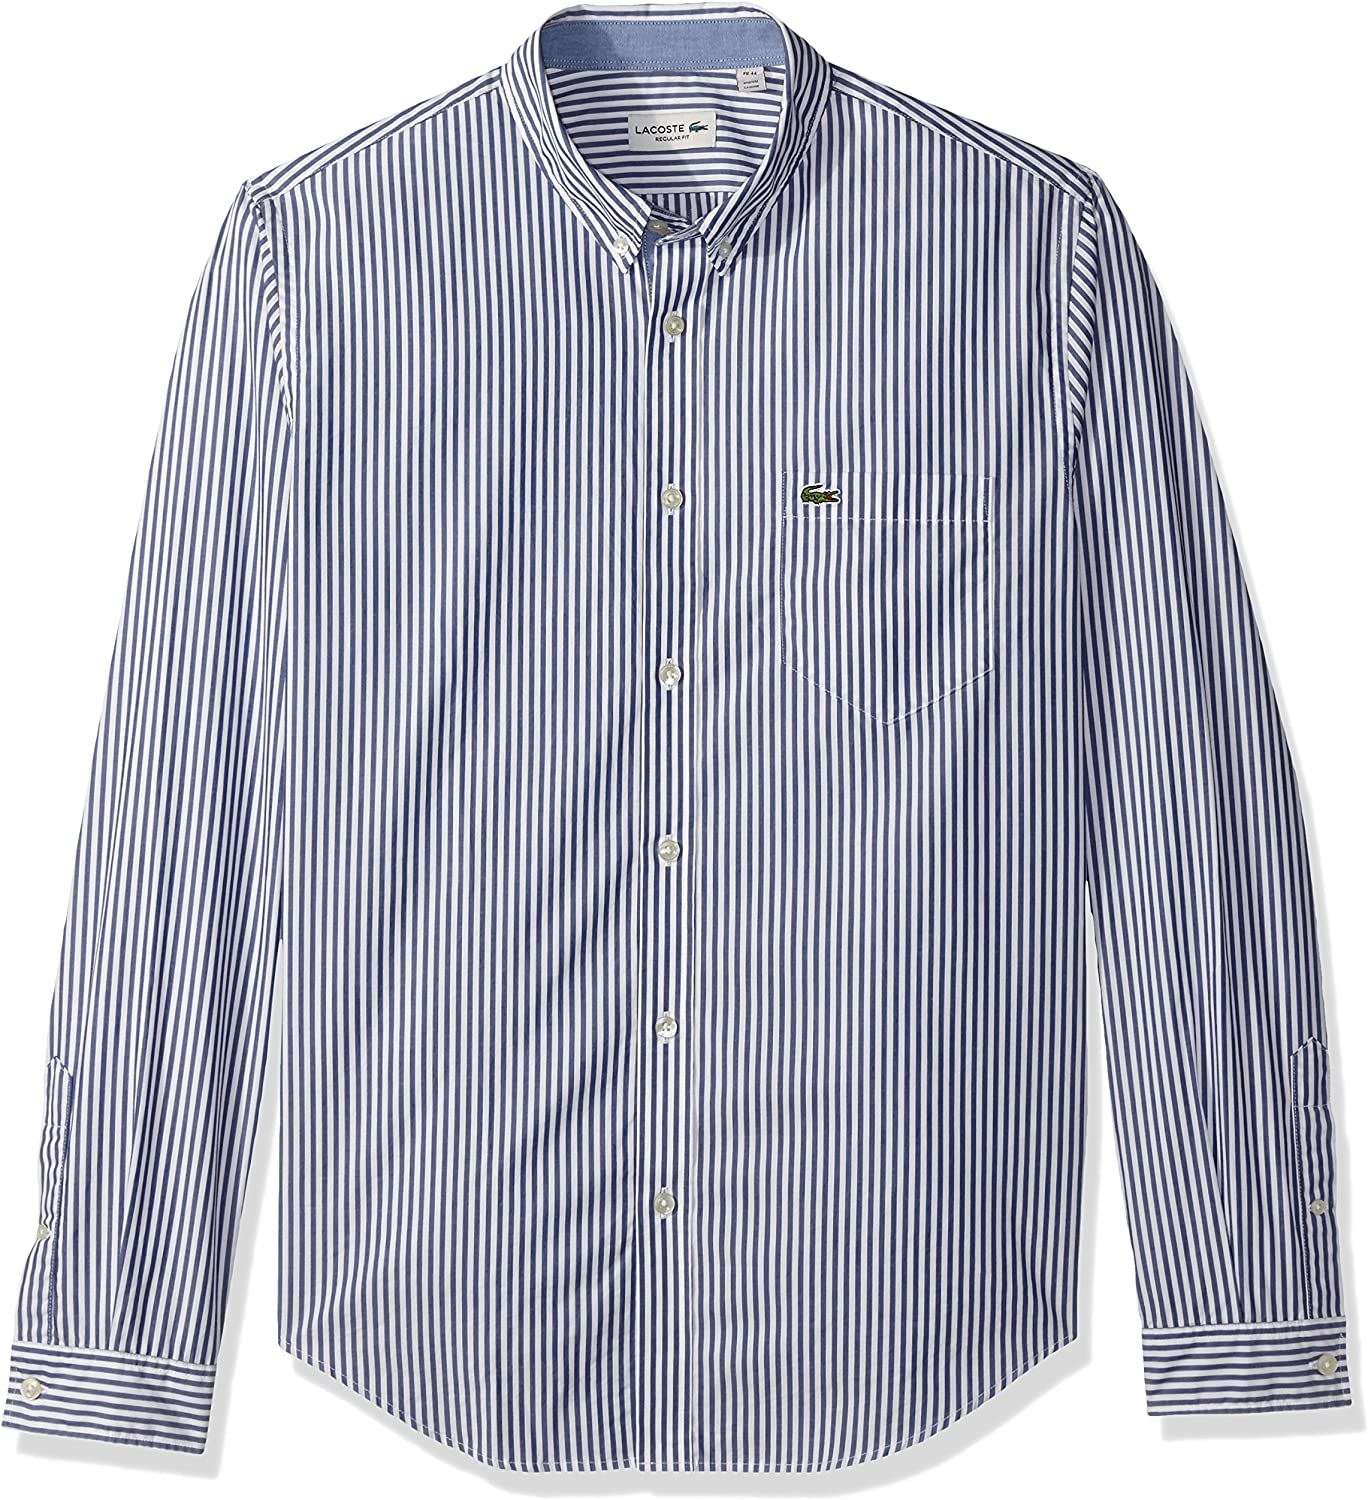 Indefinitely Quality inspection Lacoste Men's Long Sleeve Bengal Stripe Shirt Regular Fit Woven